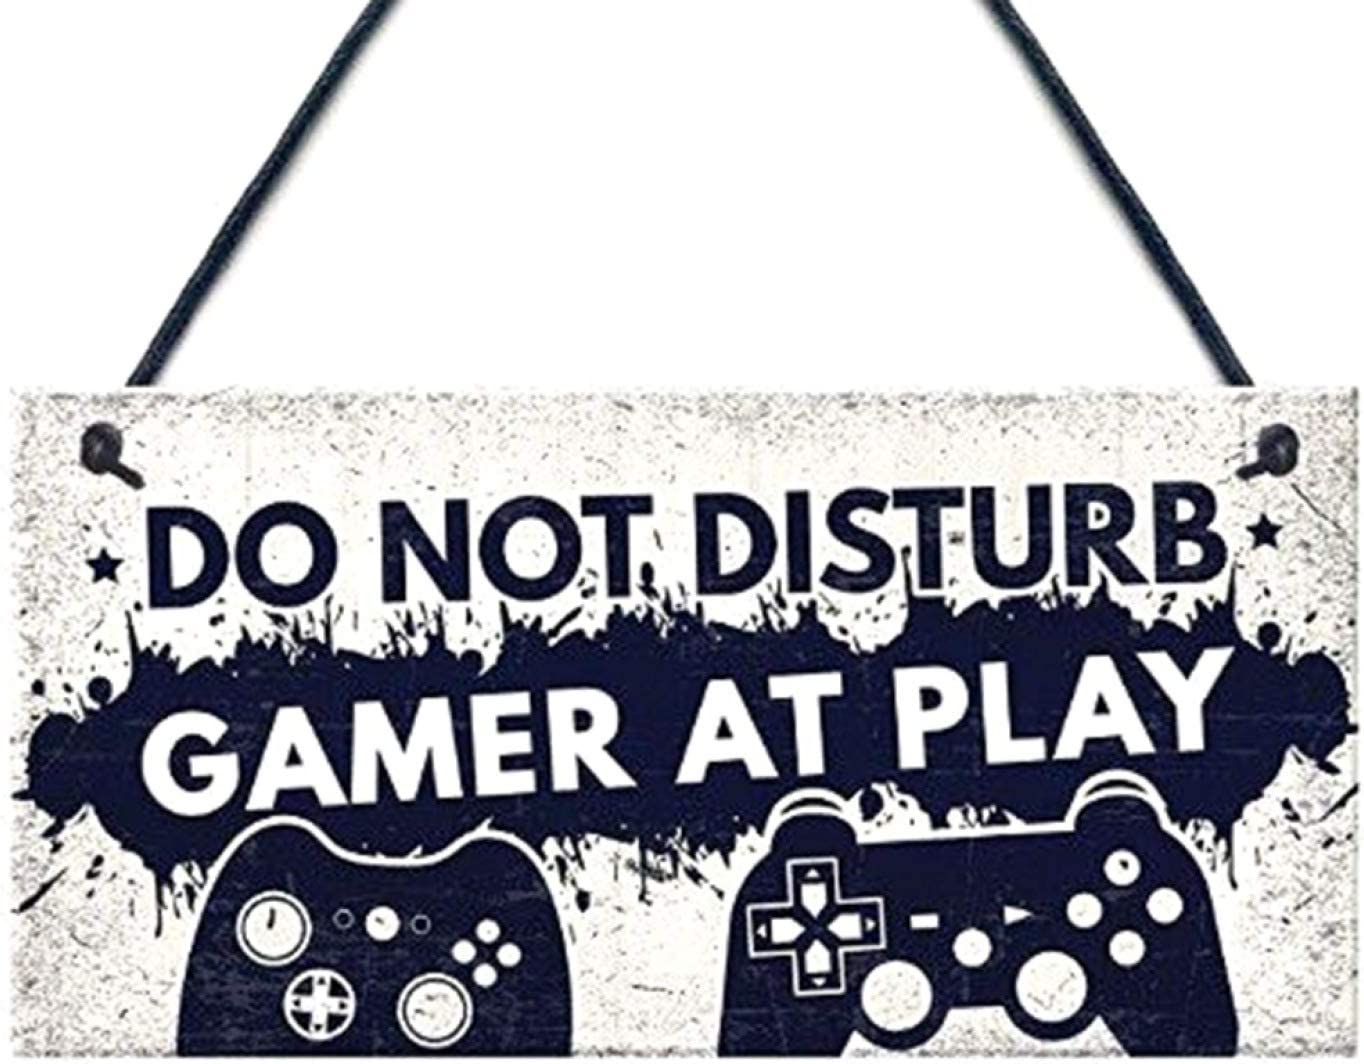 None one Size WT KULA Strict Do Not Disturb Im Gaming Gamer Gaming Bedroom Meeting Room Gifts Funny Novelty Christmas Birthday New Year Gift for Son Brother Boyfriend